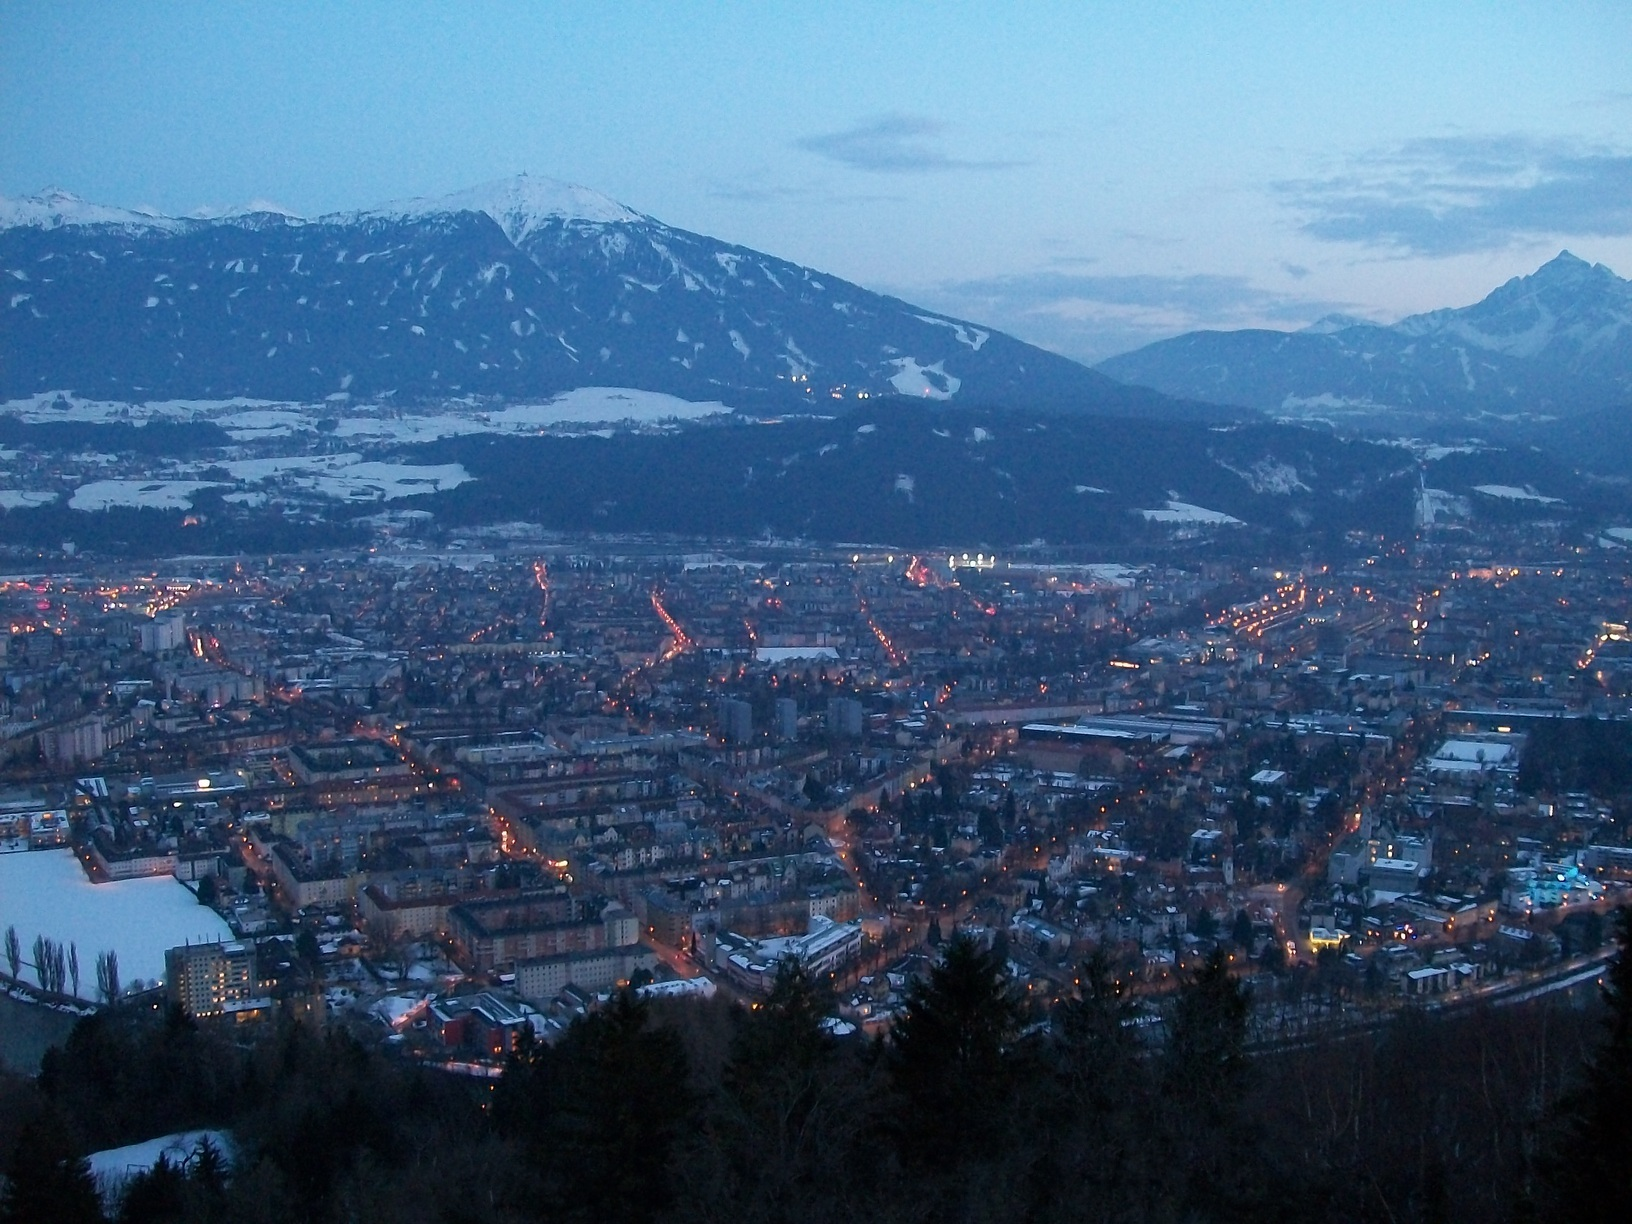 The mountains surrounding Innsbruck with the city in the foreground.